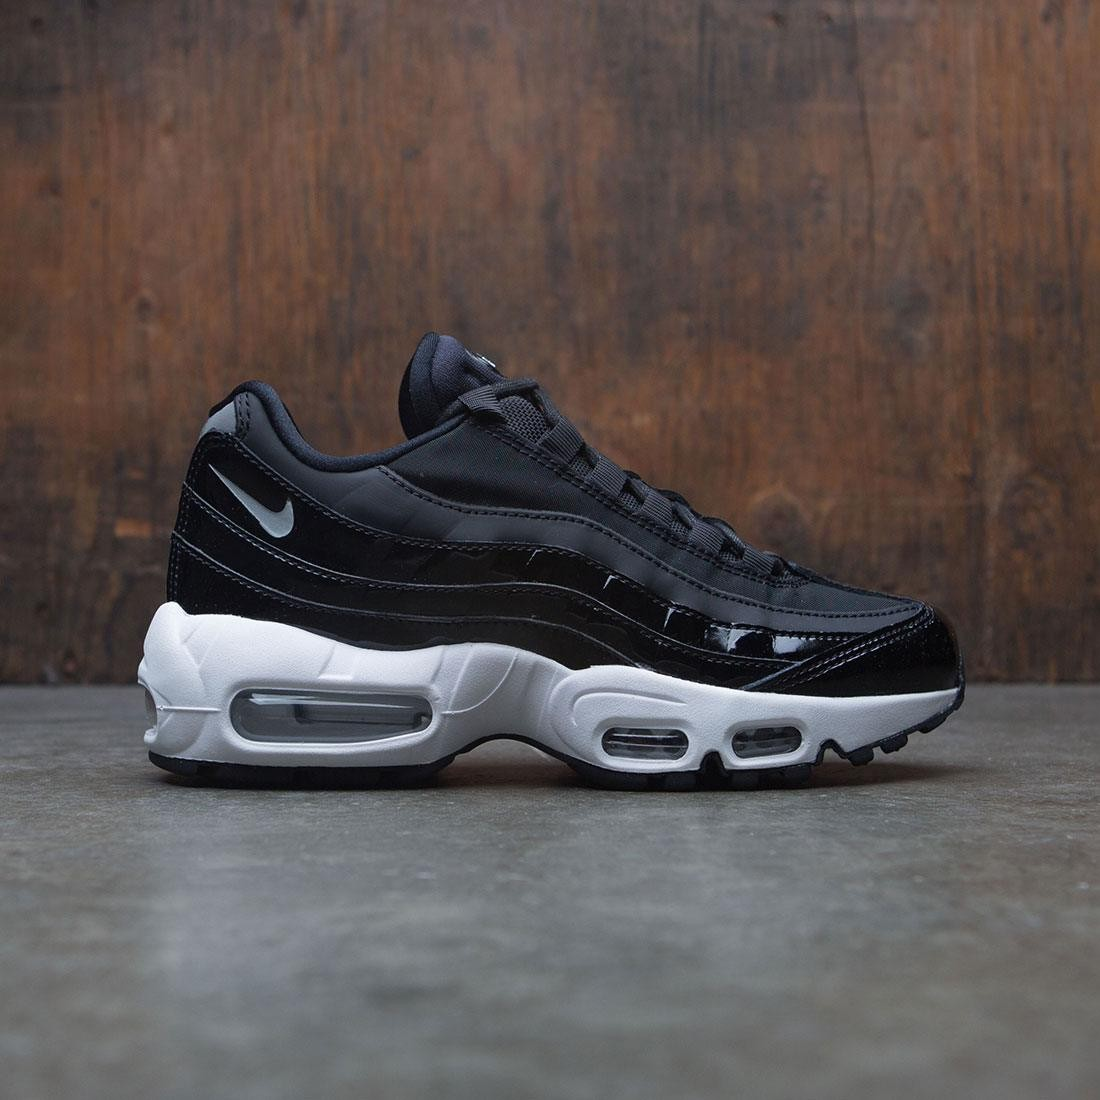 half off e72aa cc915 Nike Women Air Max 95 Special Edition Premium (black / reflect  silver-black-cool grey)